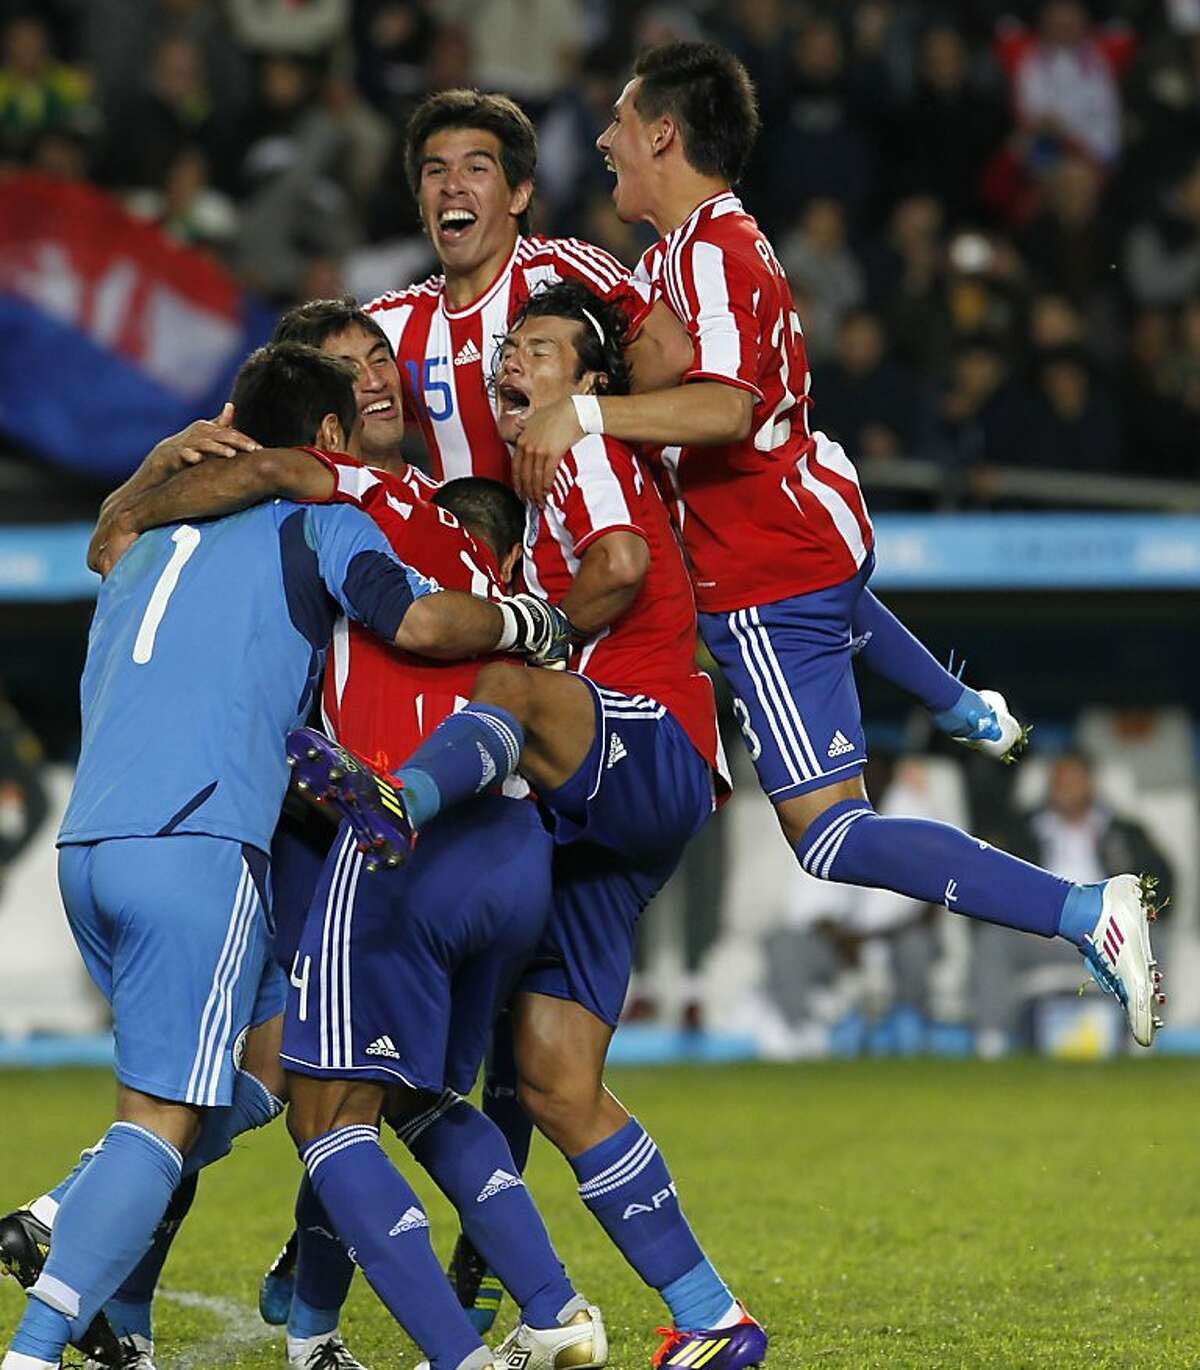 Paraguay's players celebrate after winning the penalty shootout against Brazil during a Copa America quarterfinal soccer match in La Plata, Argentina, Sunday, July 17, 2011.